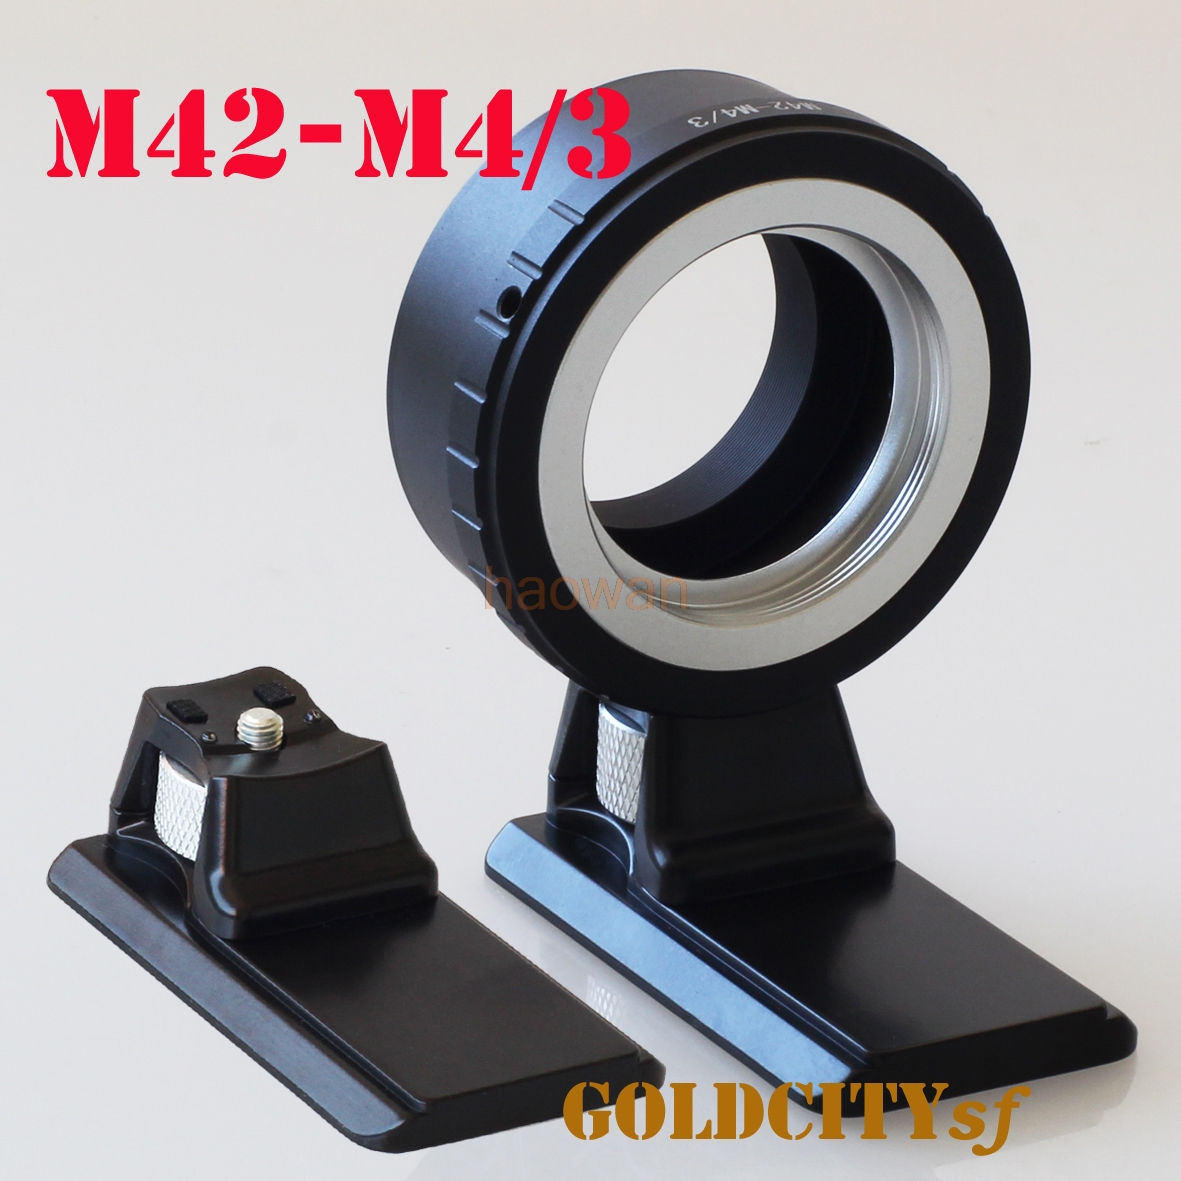 M42 42mm Lens to Micro M 4/3 M43 Adapter ring with tripod stand for G6 G7 GH1 GF1 GF3 E-P1 gf5 E-P1 EPL5 EM5 EM1 EM10 camera